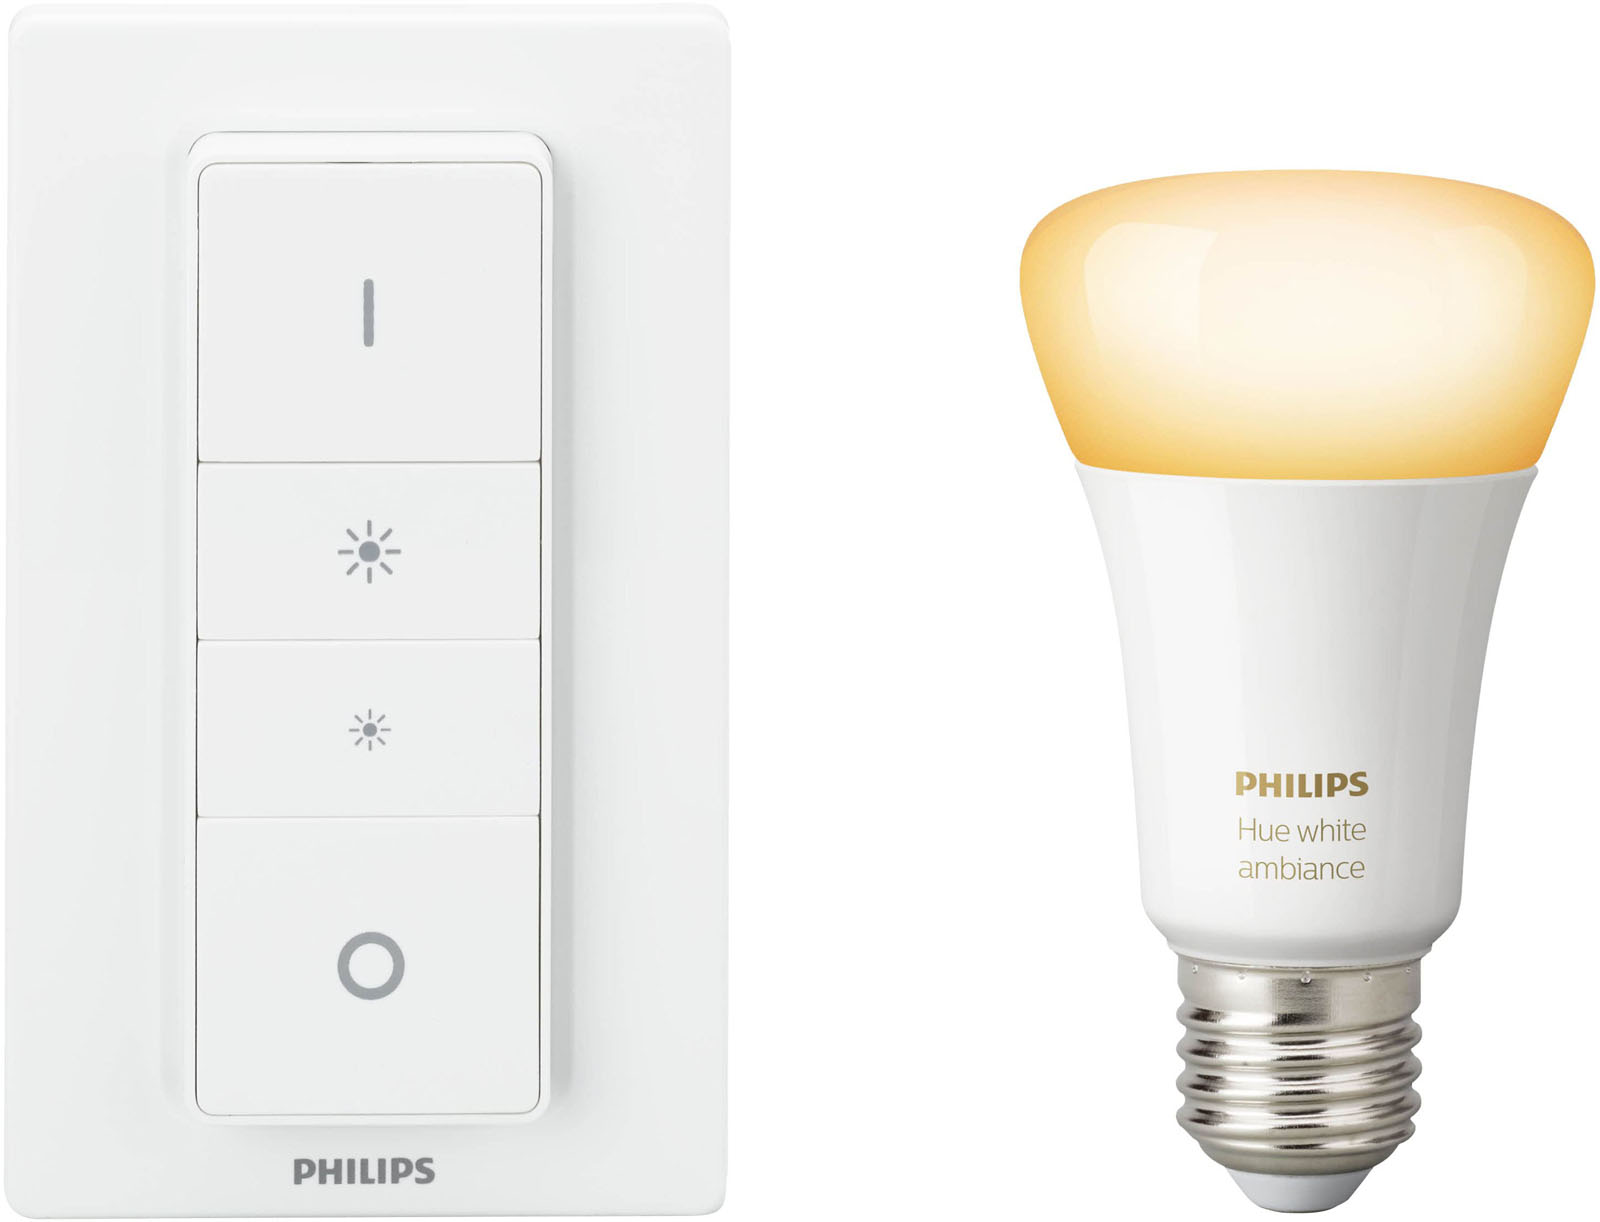 Philips Hue White Ambiance Draadloze Dimmerset E27 Bluetooth